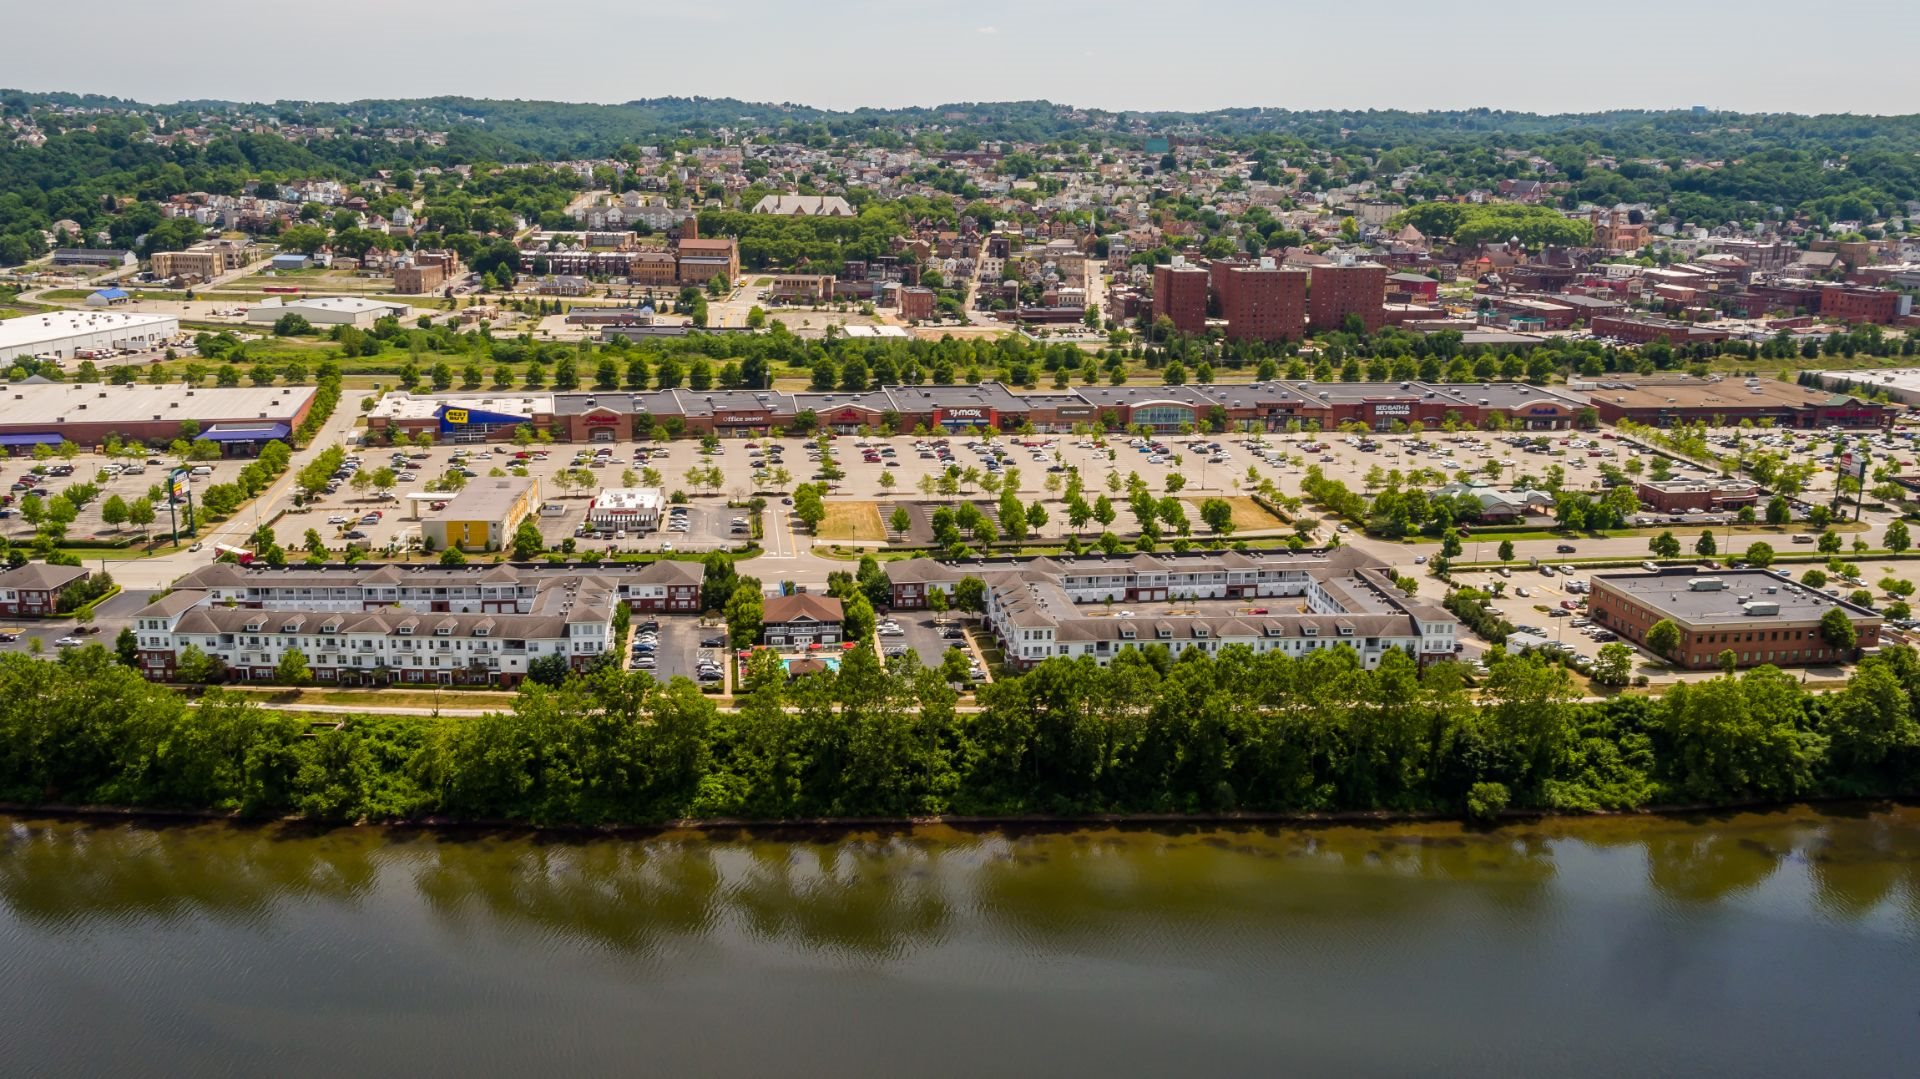 Luxury waterfront 1, 2 and 3 Bedroom Apartments and Townhomes in Munhall, PA, short commute to Downtown Pittsburgh, Oakland and North Shore via I-376